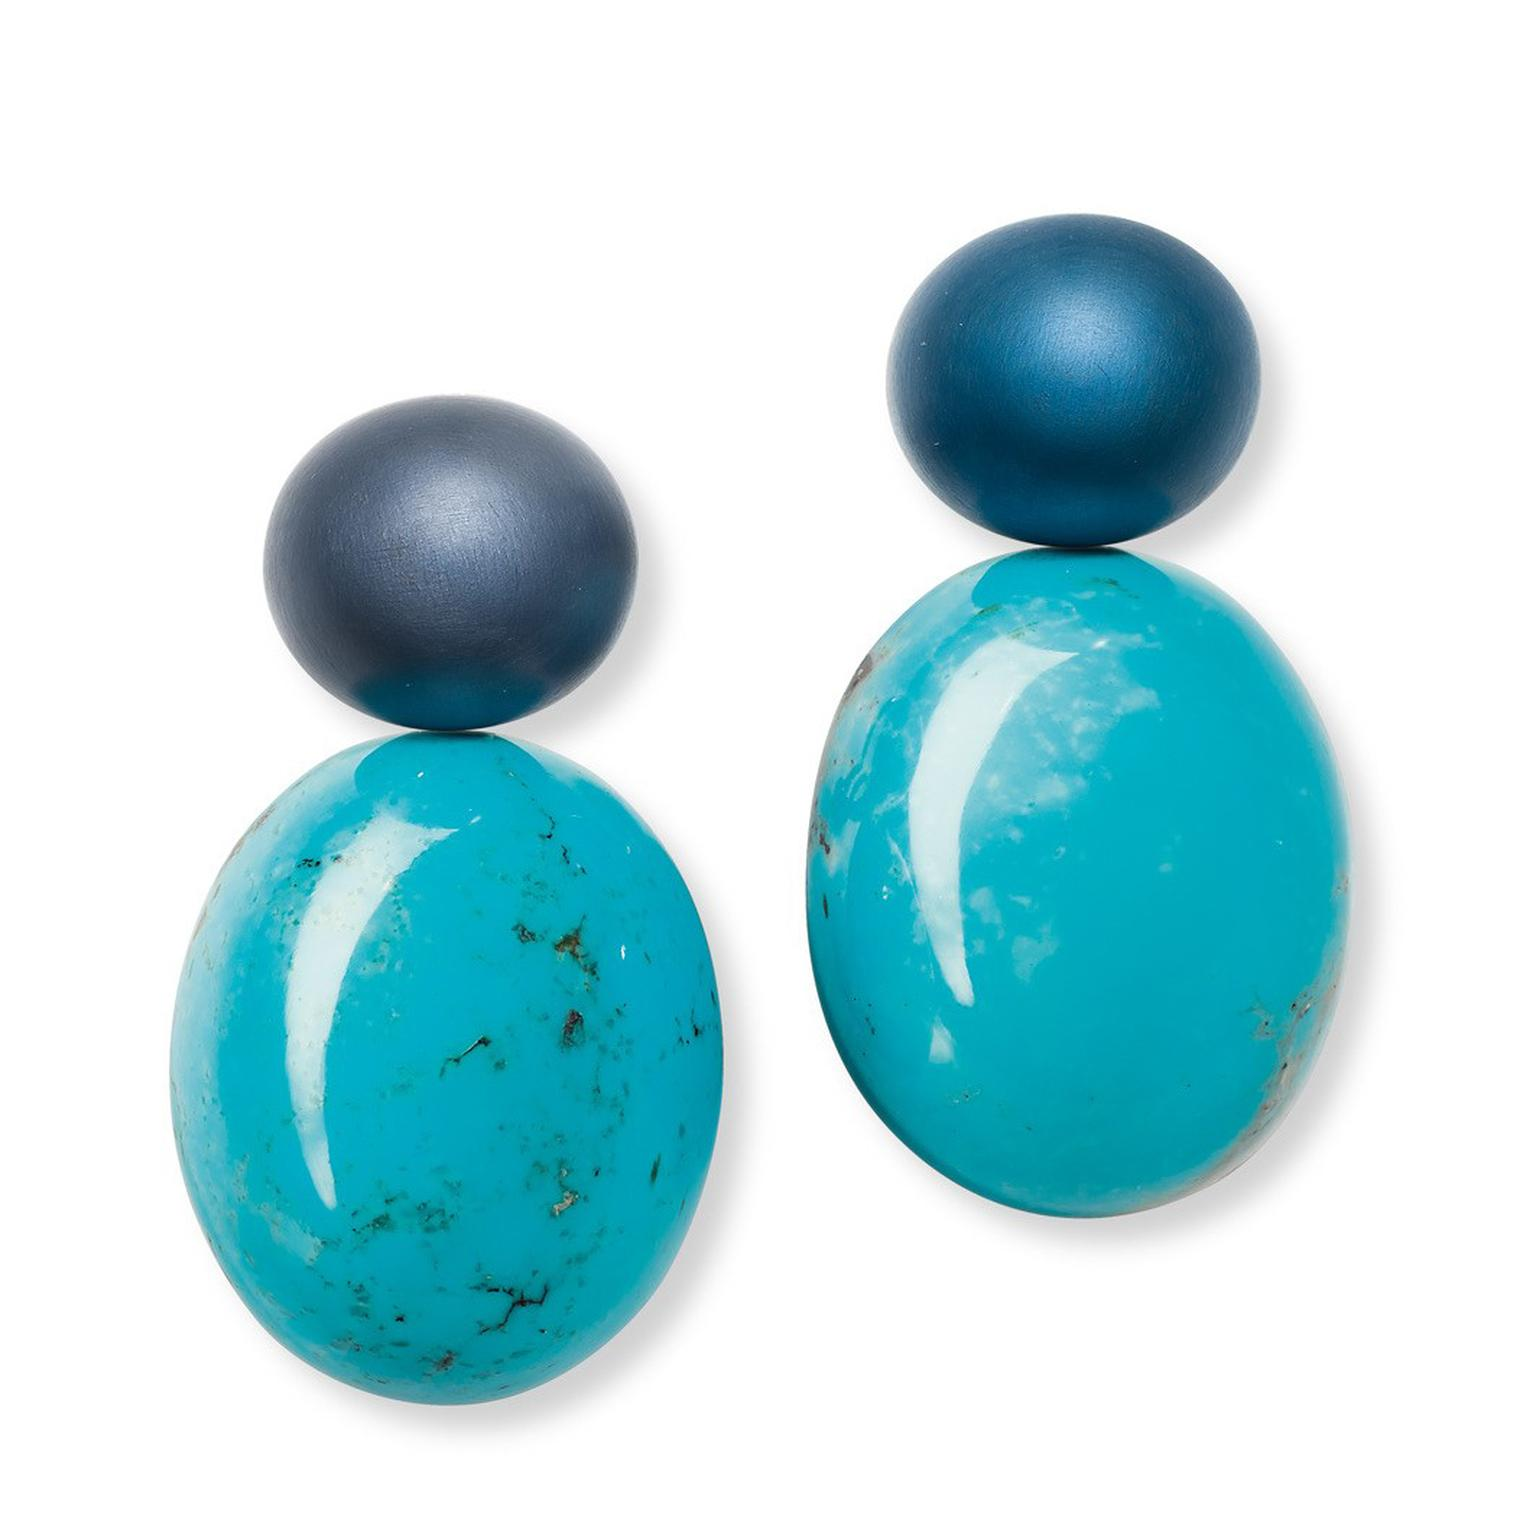 Hemmerle turquoise and blue aluminium earrings